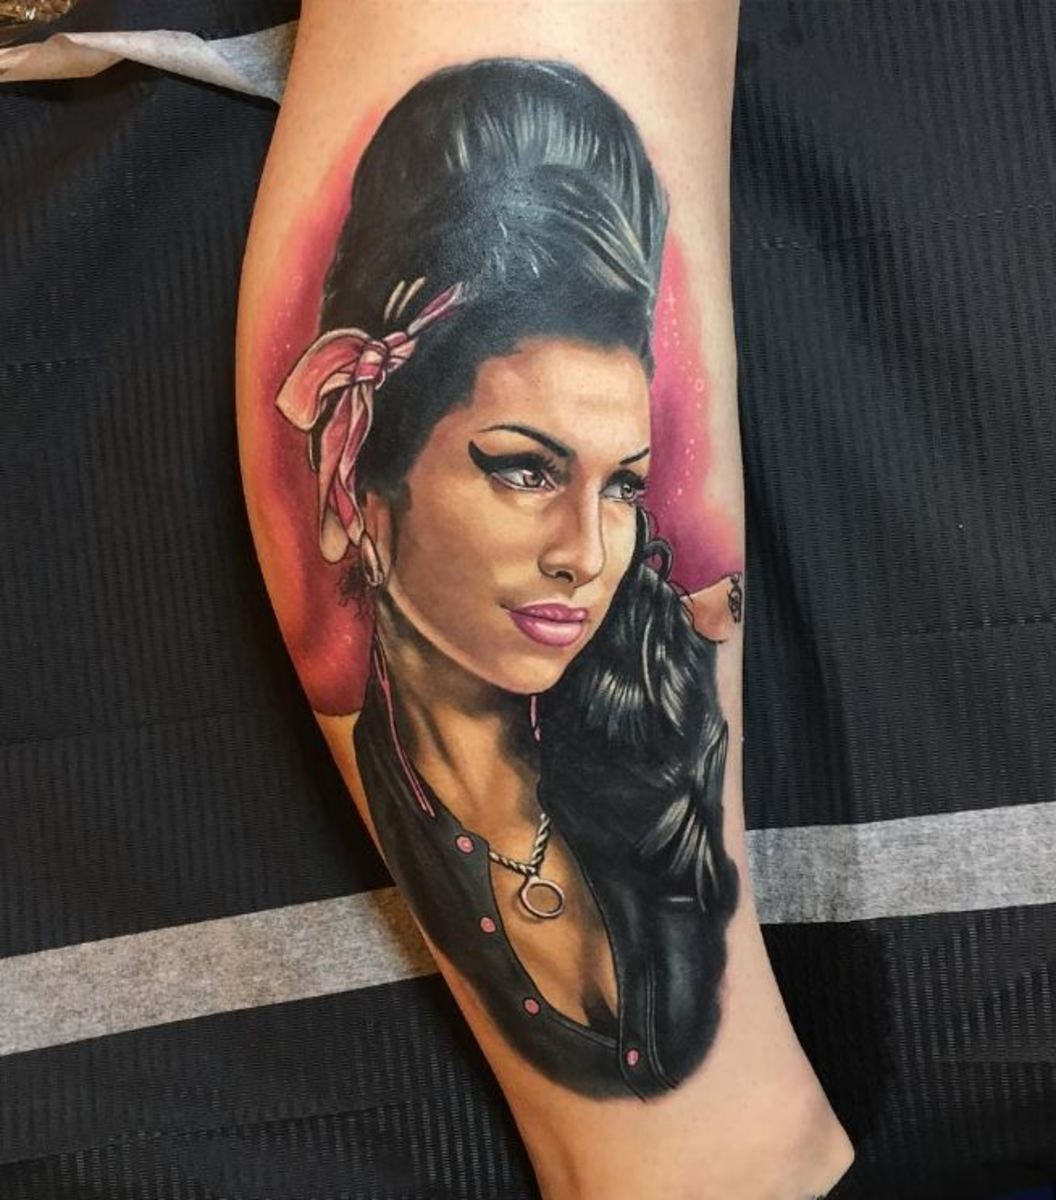 amy-winehouse-tattoo-1483170404k84gn